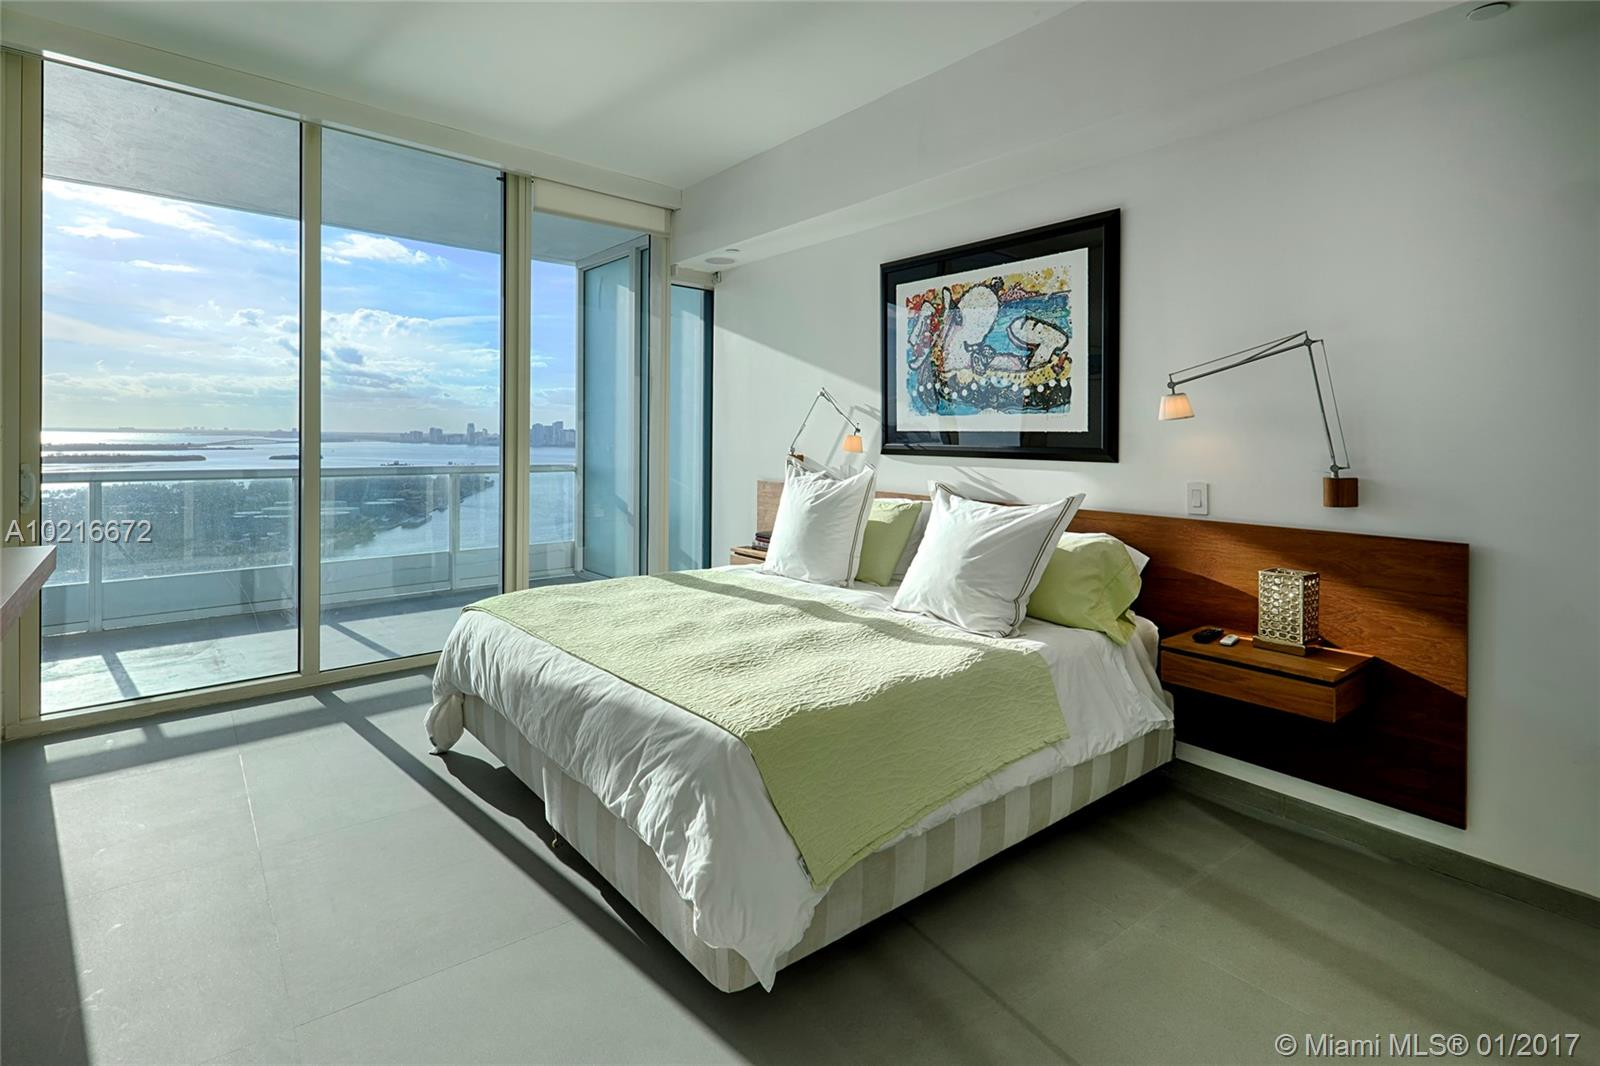 100 Pointe dr-3303 miami-beach--fl-33139-a10216672-Pic25